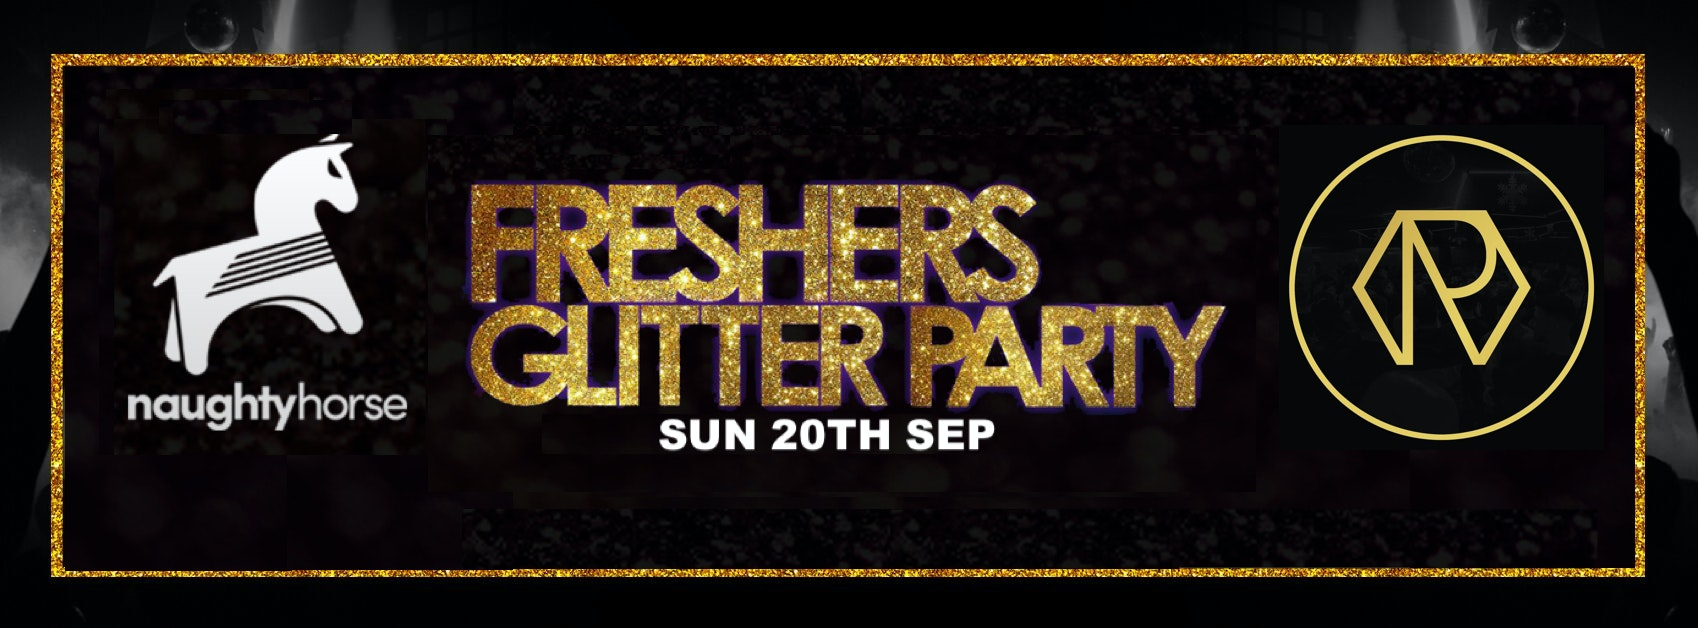 Birmingham Freshers – MOVE IN GLITTER PARTY at ROSIES! (FlexiTicket – Sep, Oct, Nov, Dec, Jan, Feb, March*)!